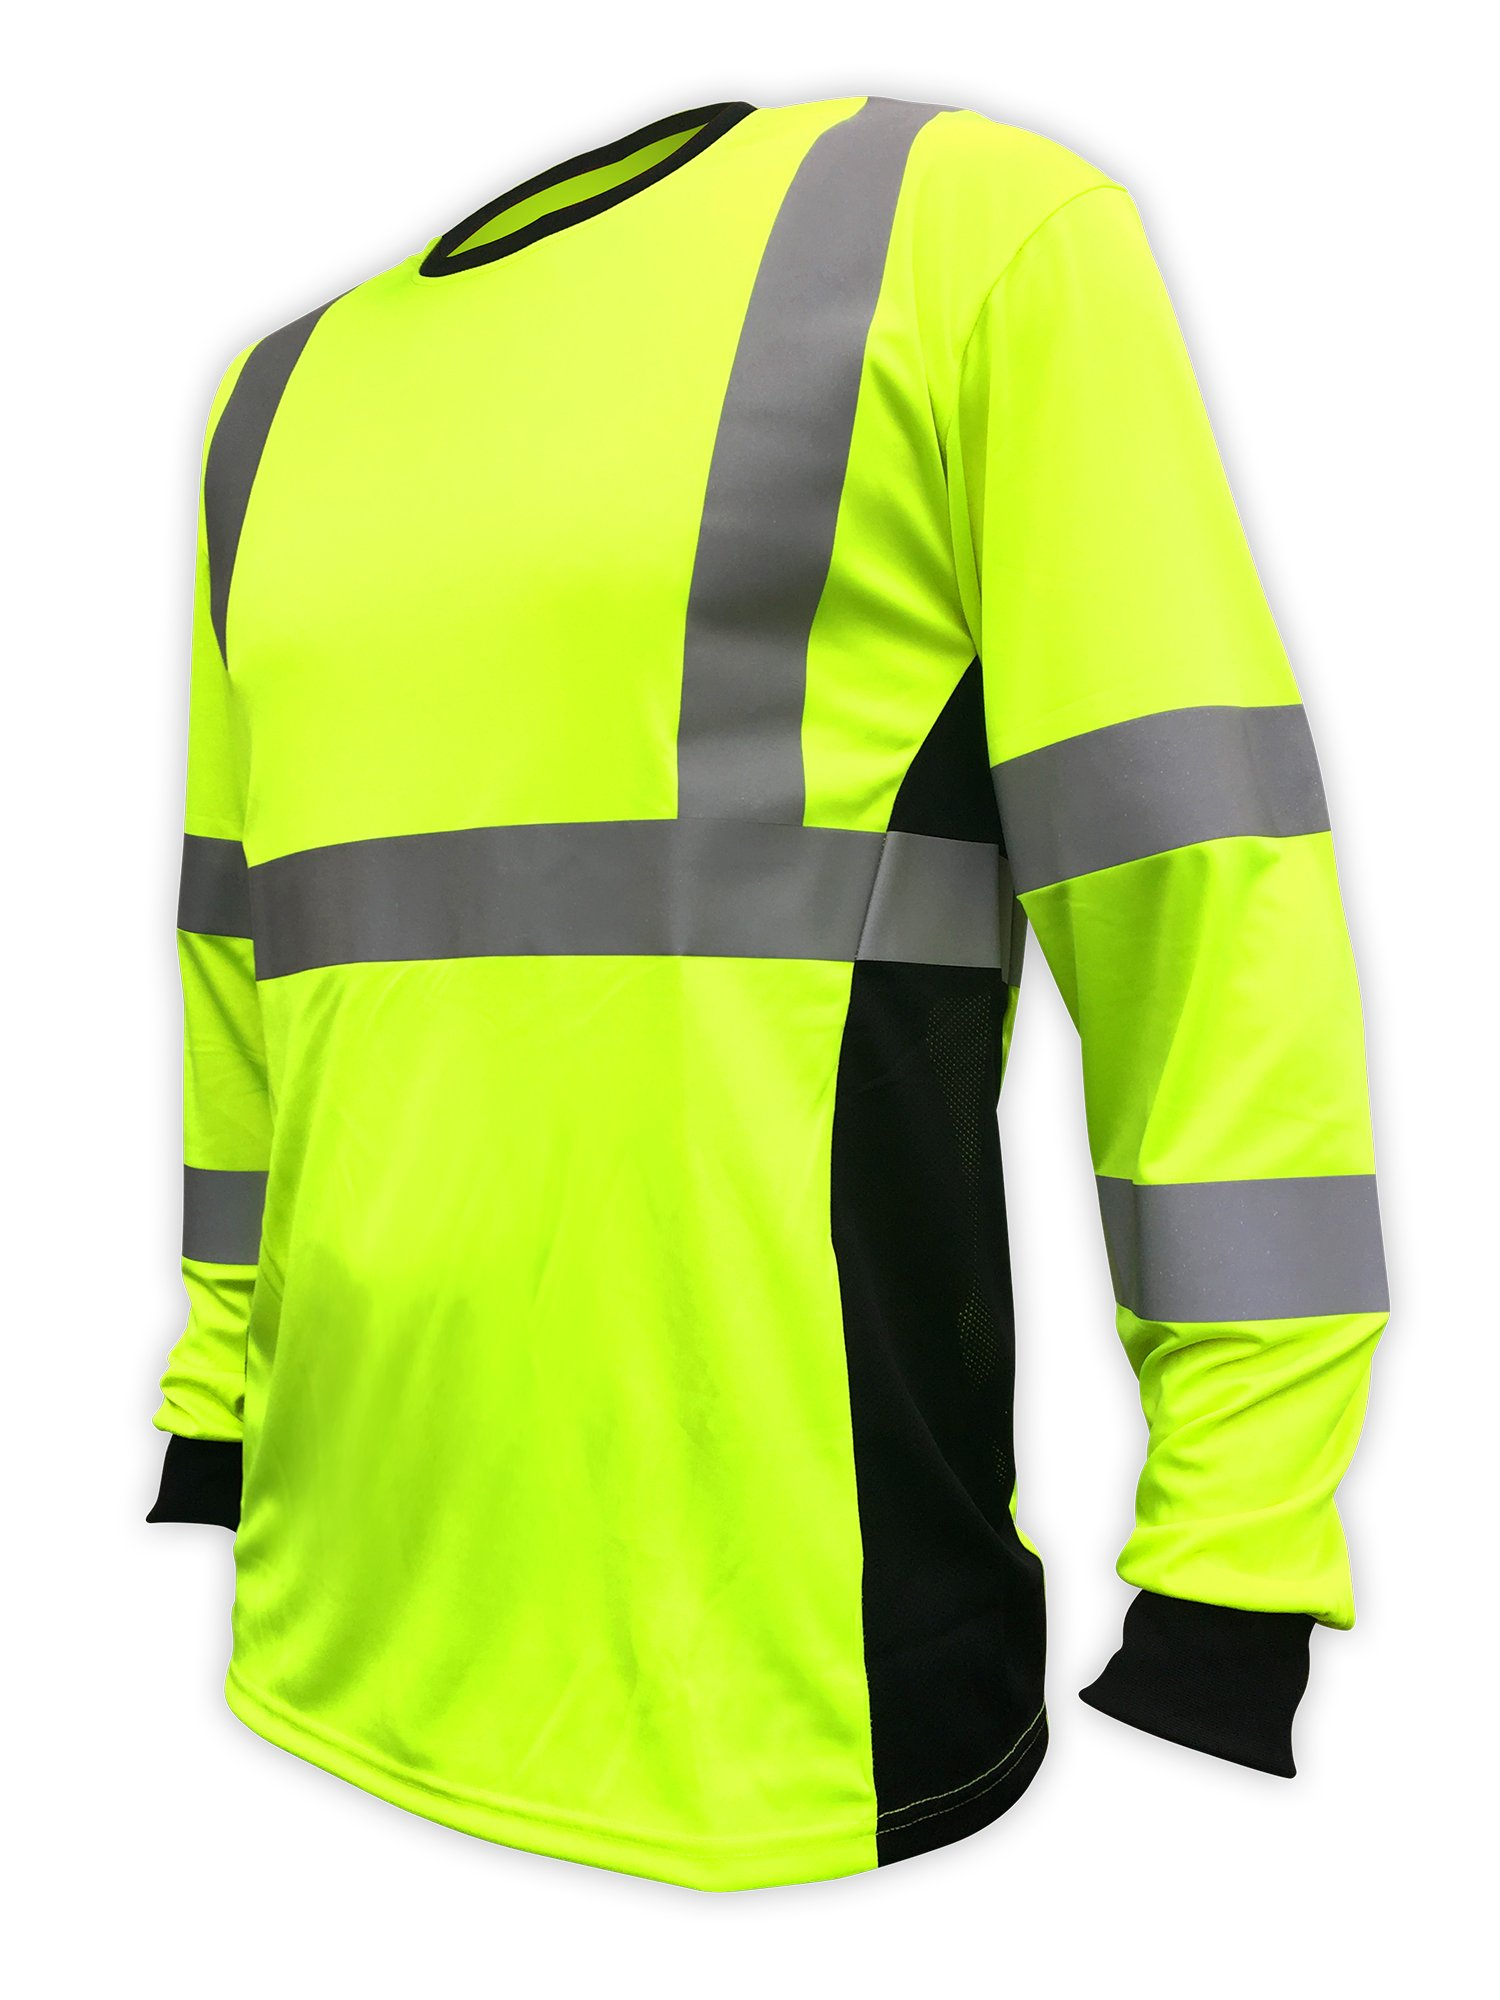 SafetyShirtz SS360 ANSI Class 3 Safety Long Sleeve Tee Yellow (Safety Green) w/Vented Sides S